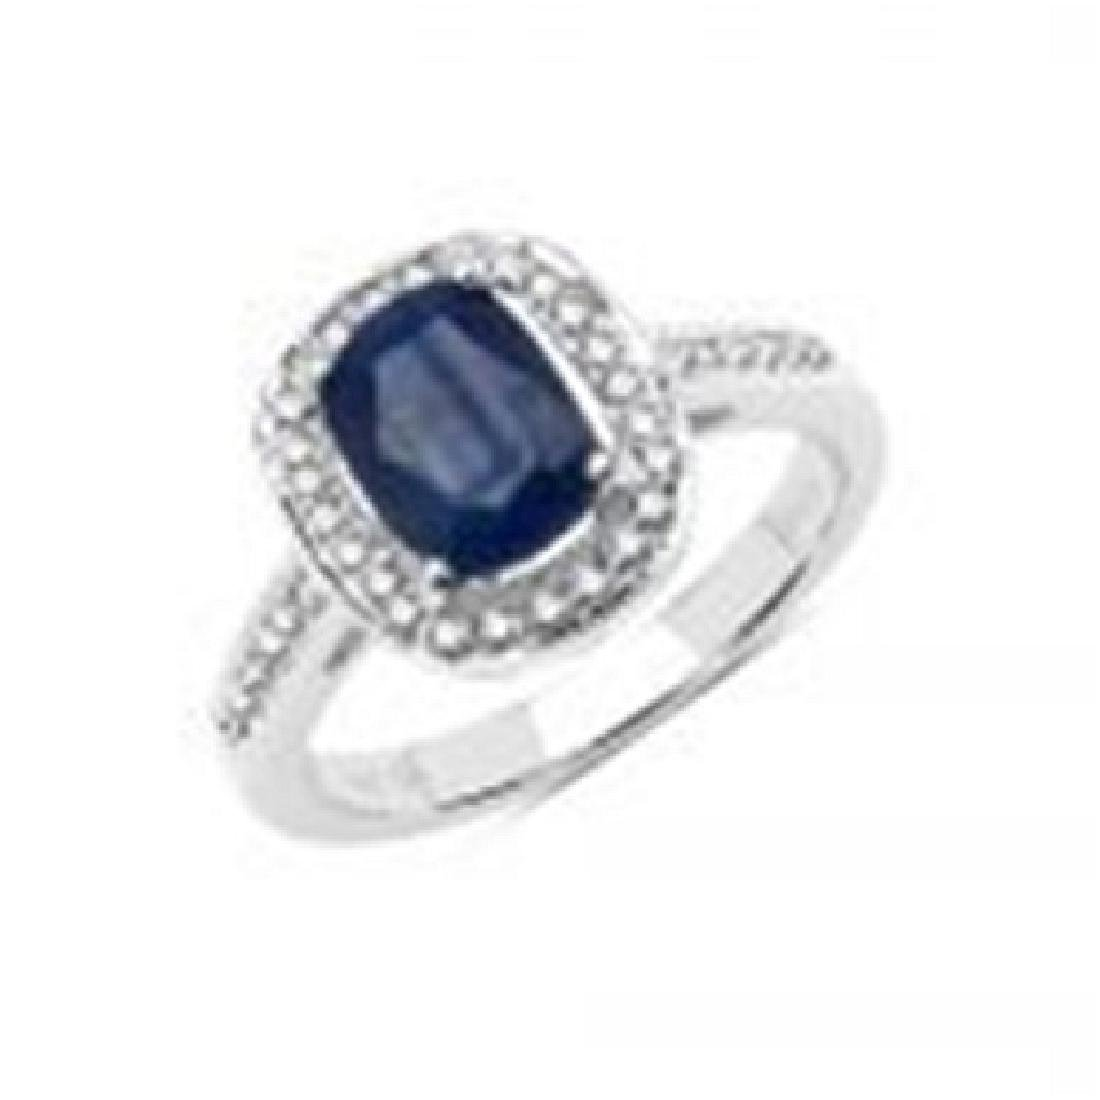 APP: 3.5k 14KT White Gold, 1.90CT Oval Cut Sapphire &